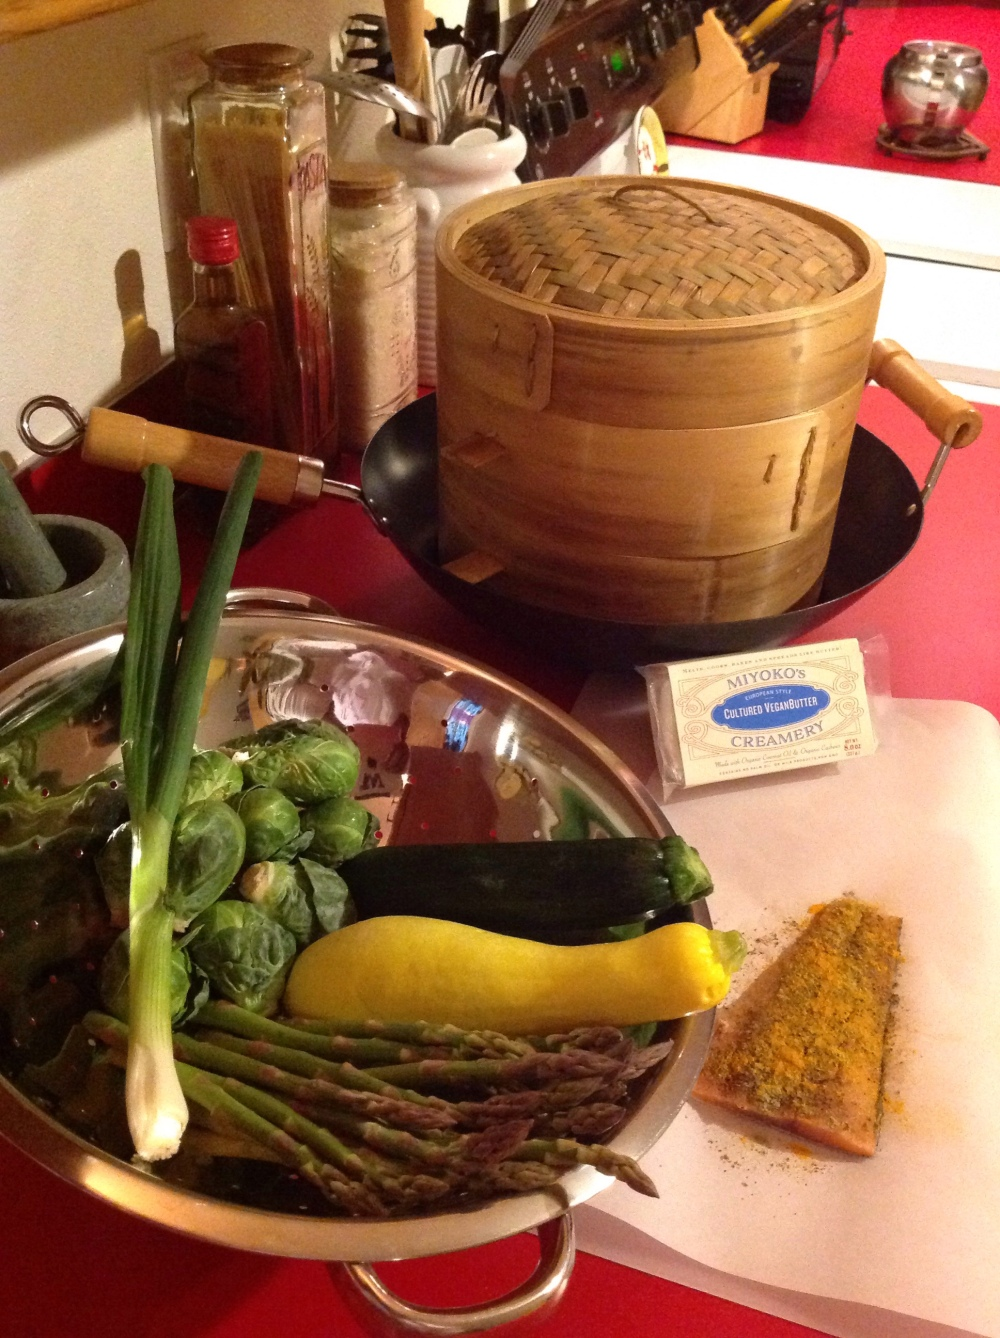 Prepping tonight's meal for my bamboo steamer...